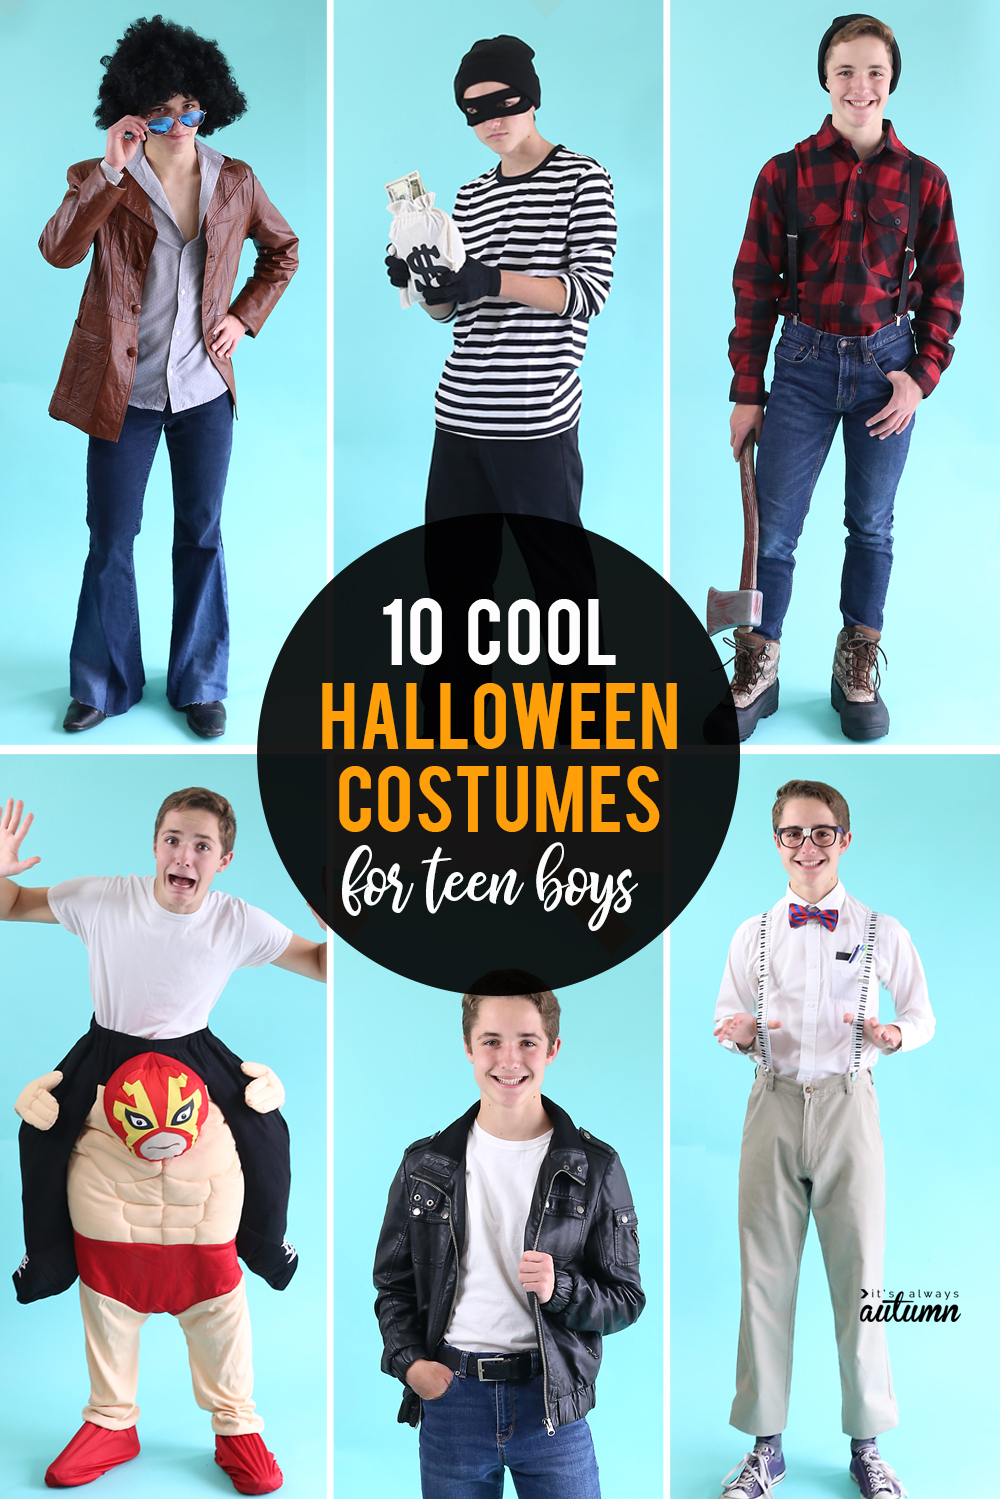 10 cool halloween costumes for teen boys - it's always autumn